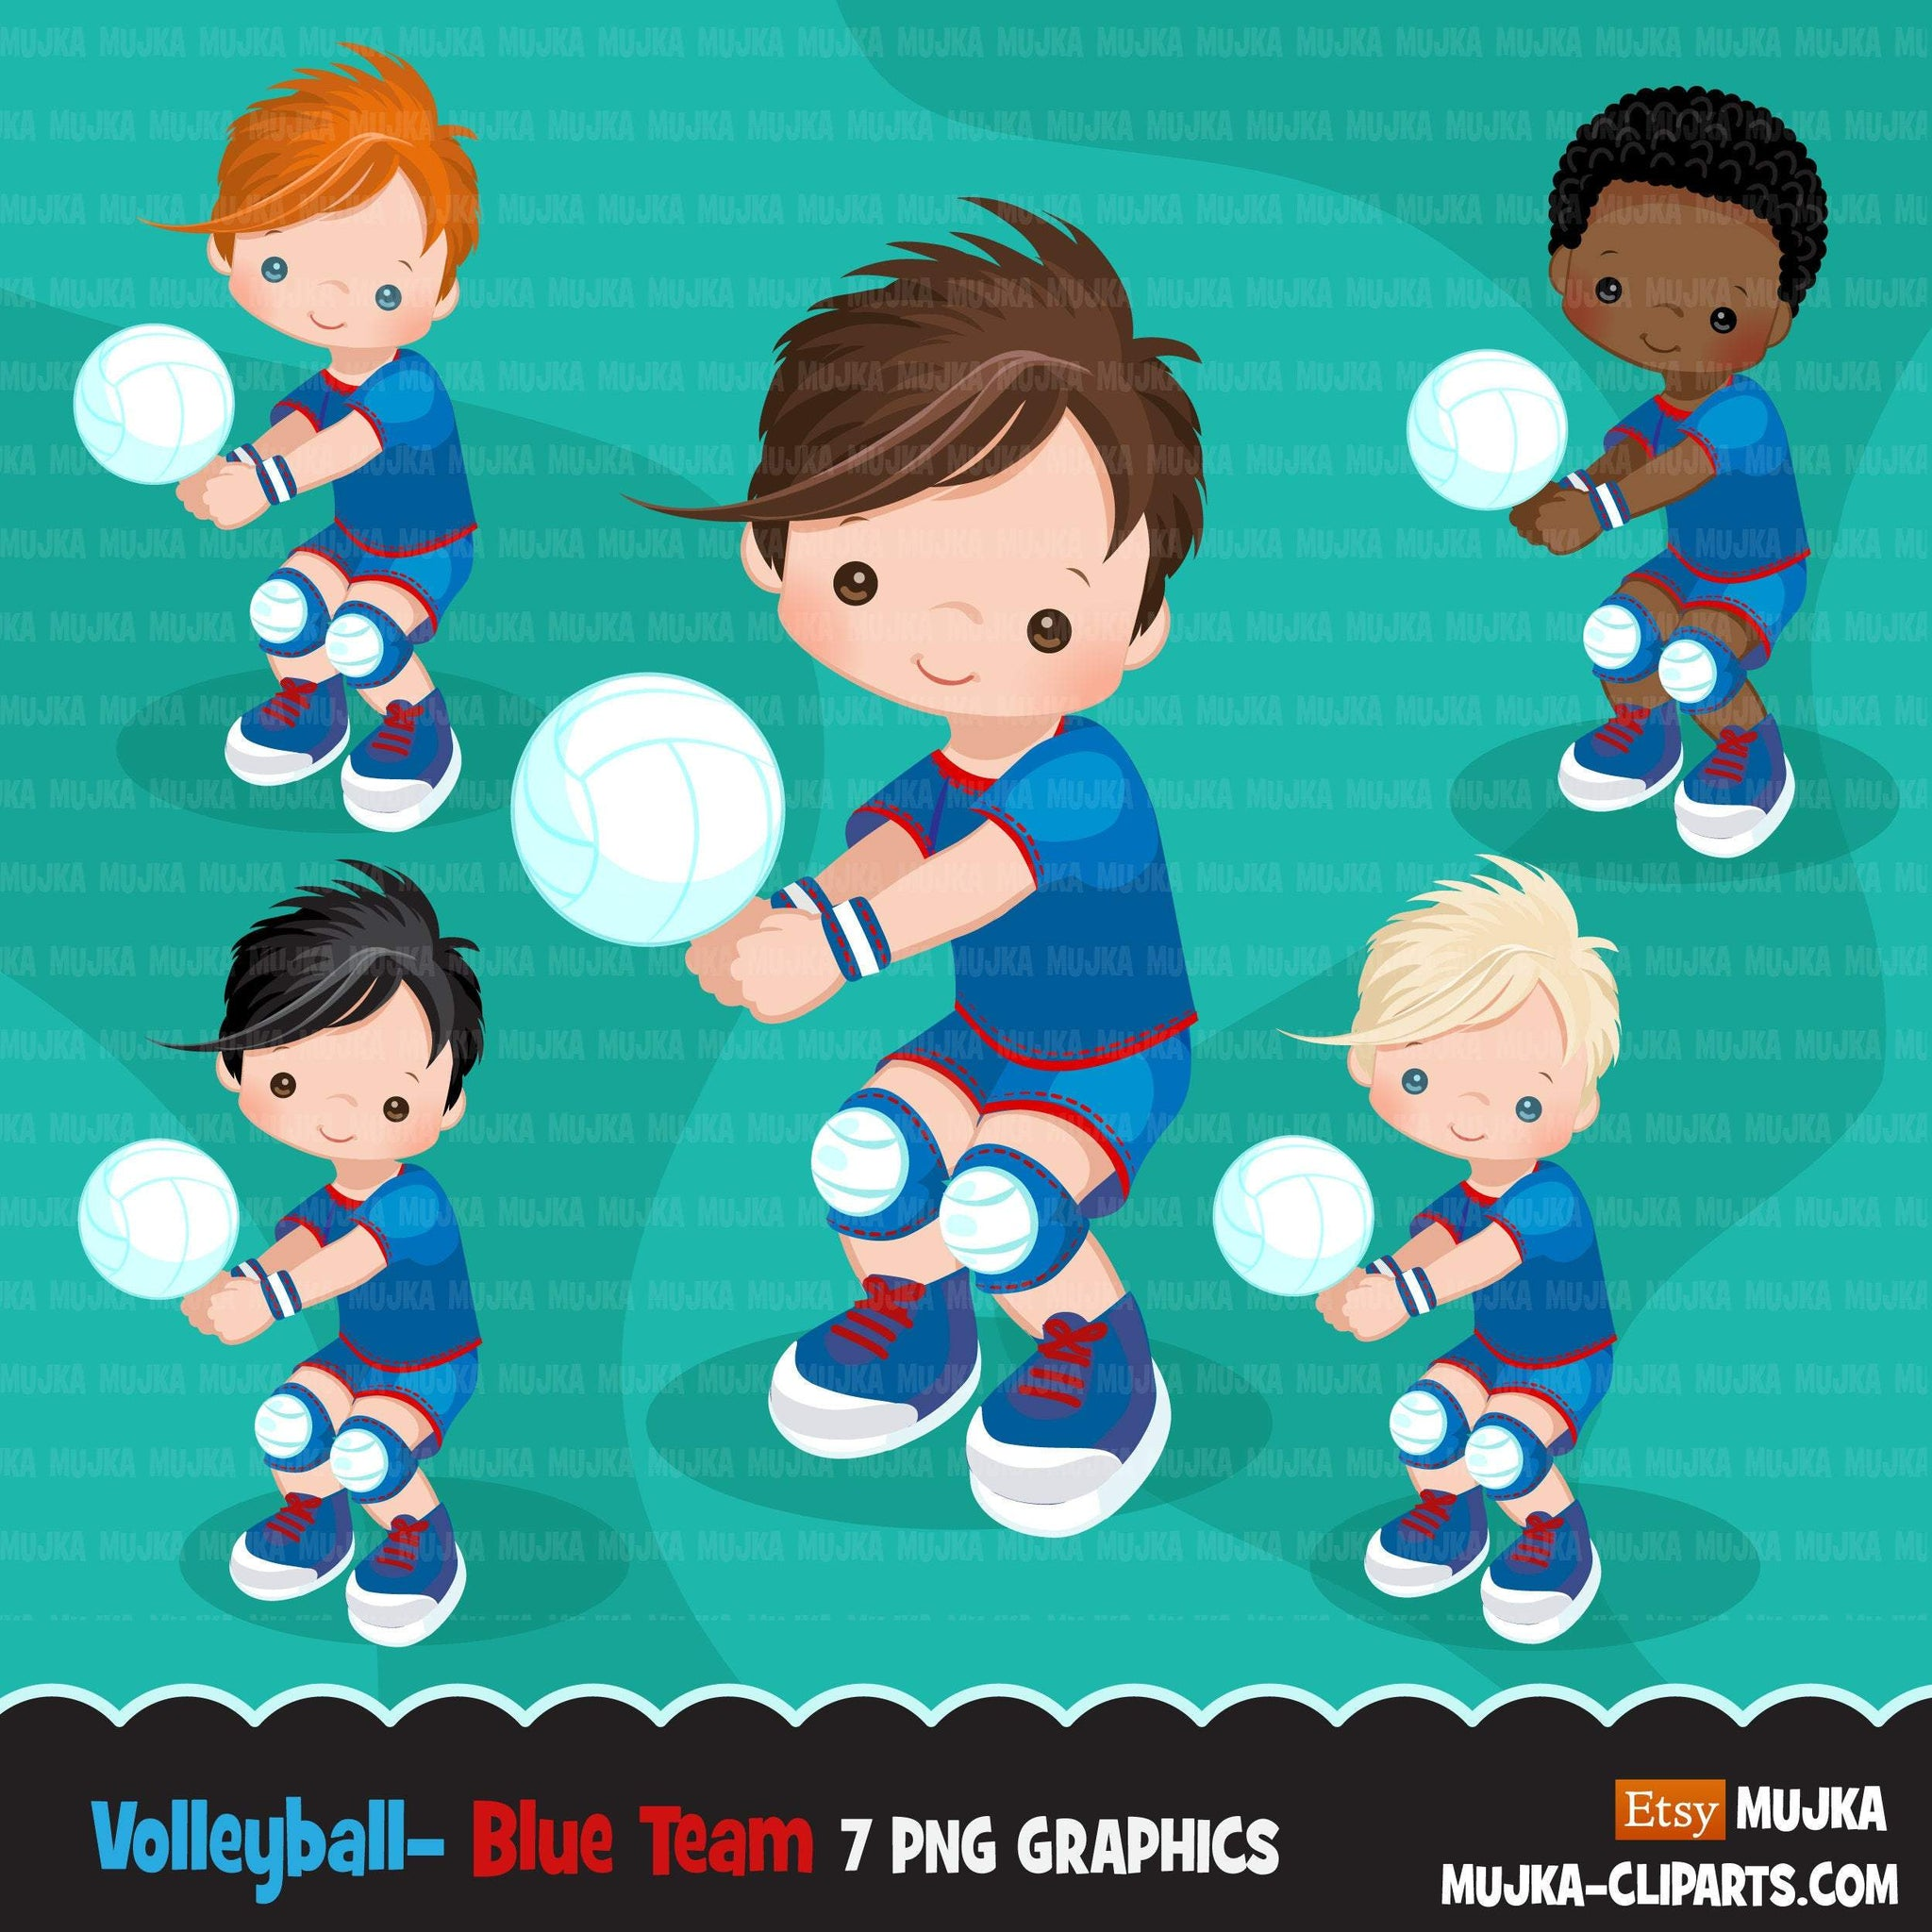 Volleyball players clipart, african american boy, card making, planner stickers, activity, outdoor sports, school clip art